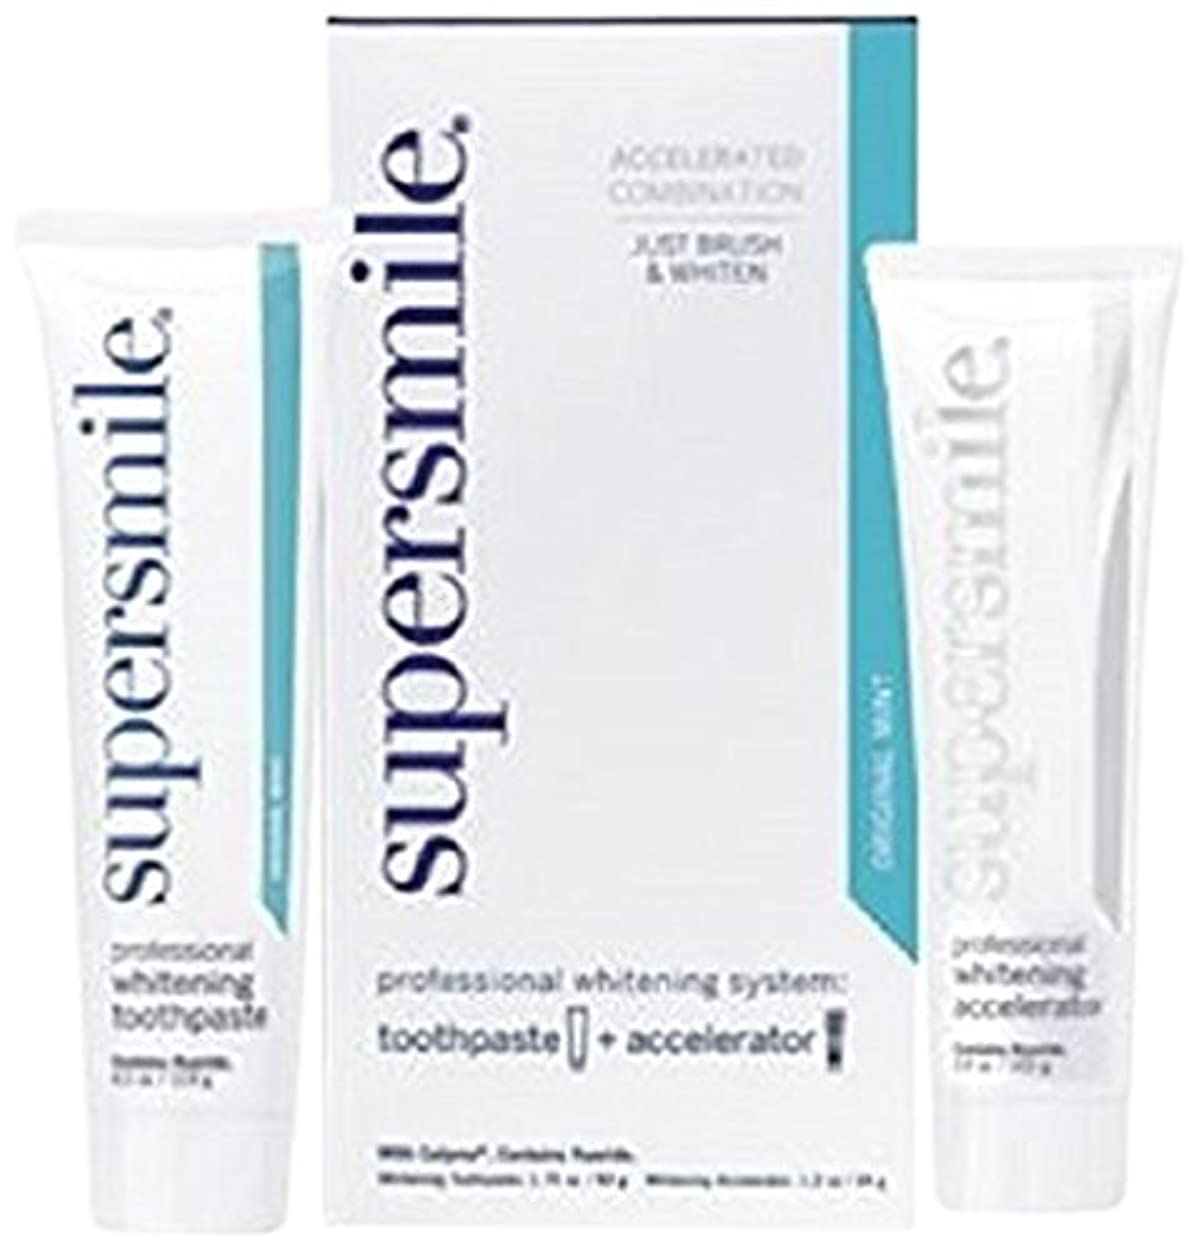 襲撃瀬戸際消防士Supersmile Professional Whitening System: Toothpaste 50g/1.75oz + Accelerator 34g/1.2oz - 2pcs by SuperSmile